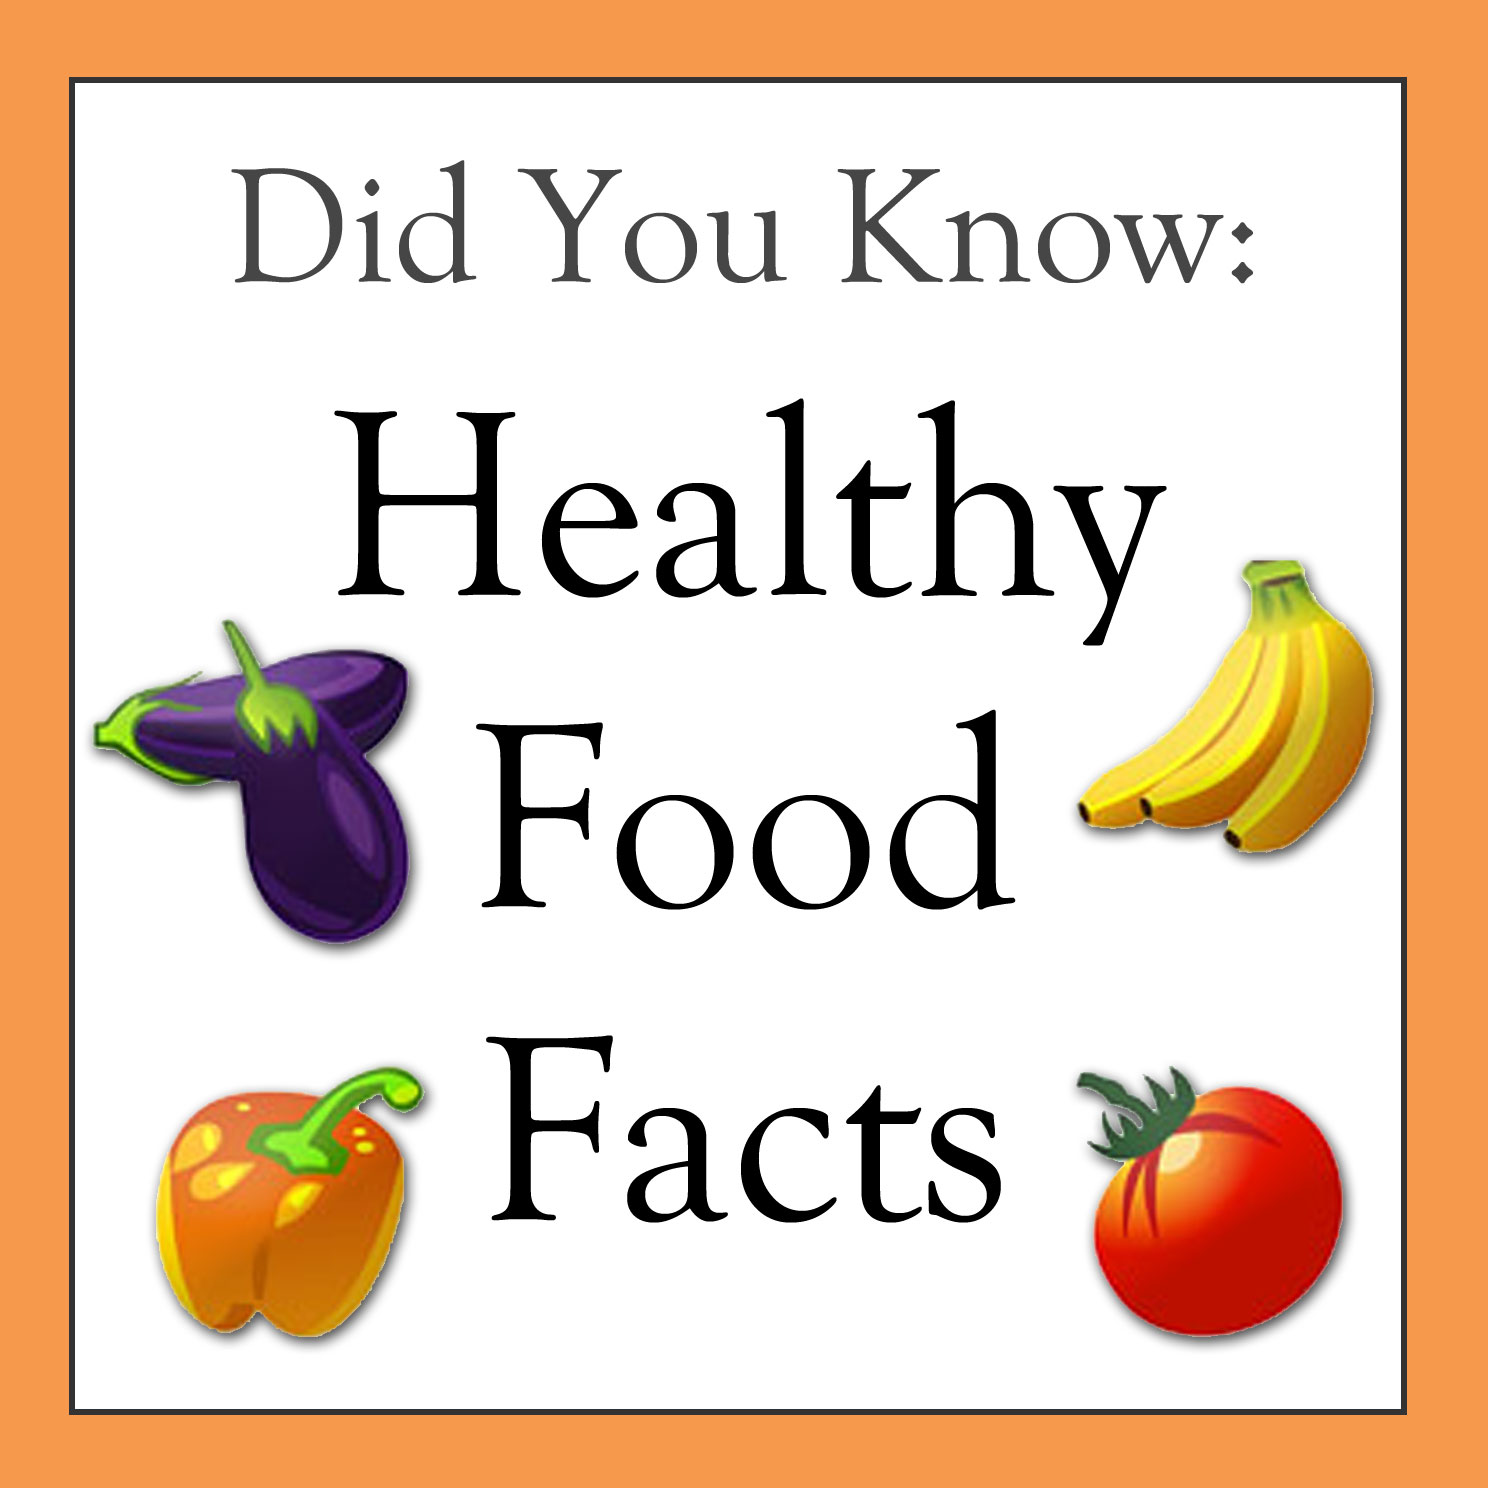 Did You Know Healthy Food Facts